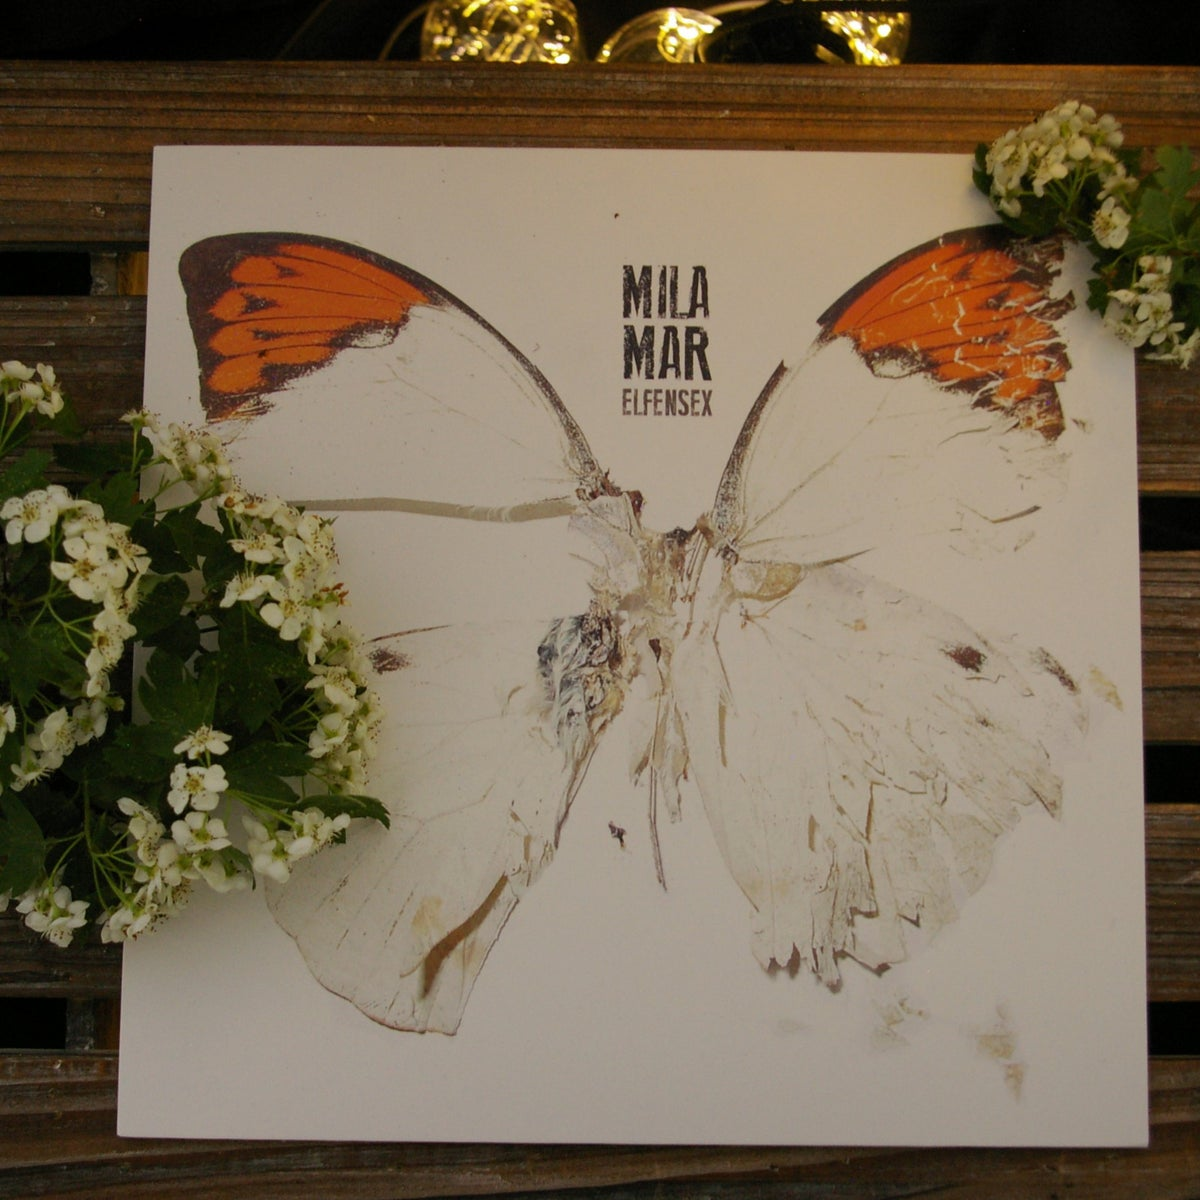 Mila Mar - Elfensex - LP Vinyl